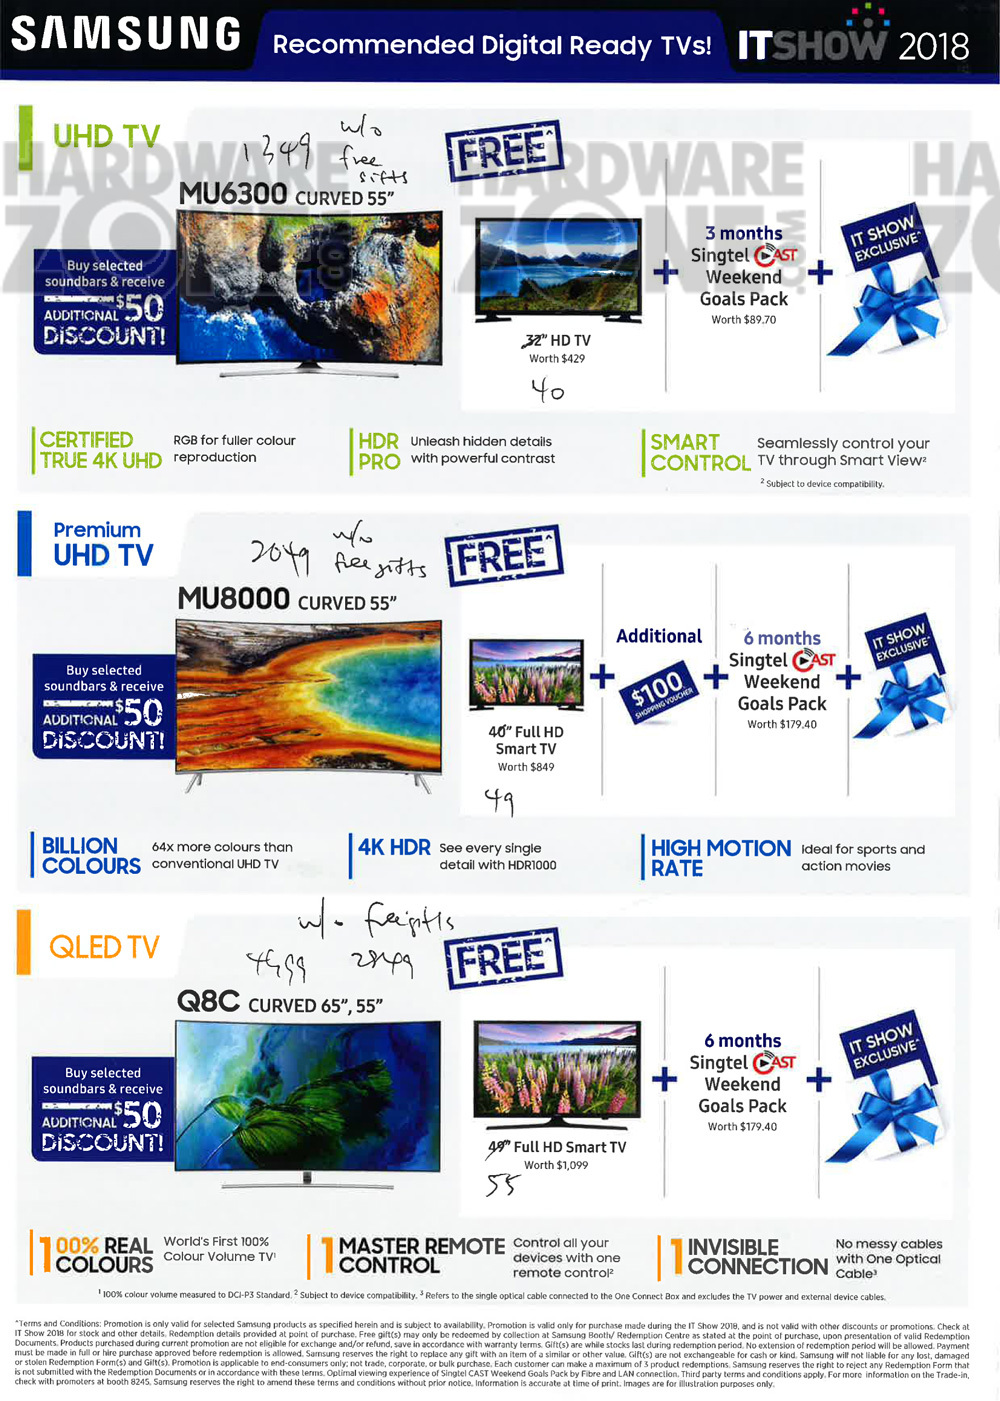 Samsung TVs - Pg 4 Brochures from IT Show 2018 Singapore on